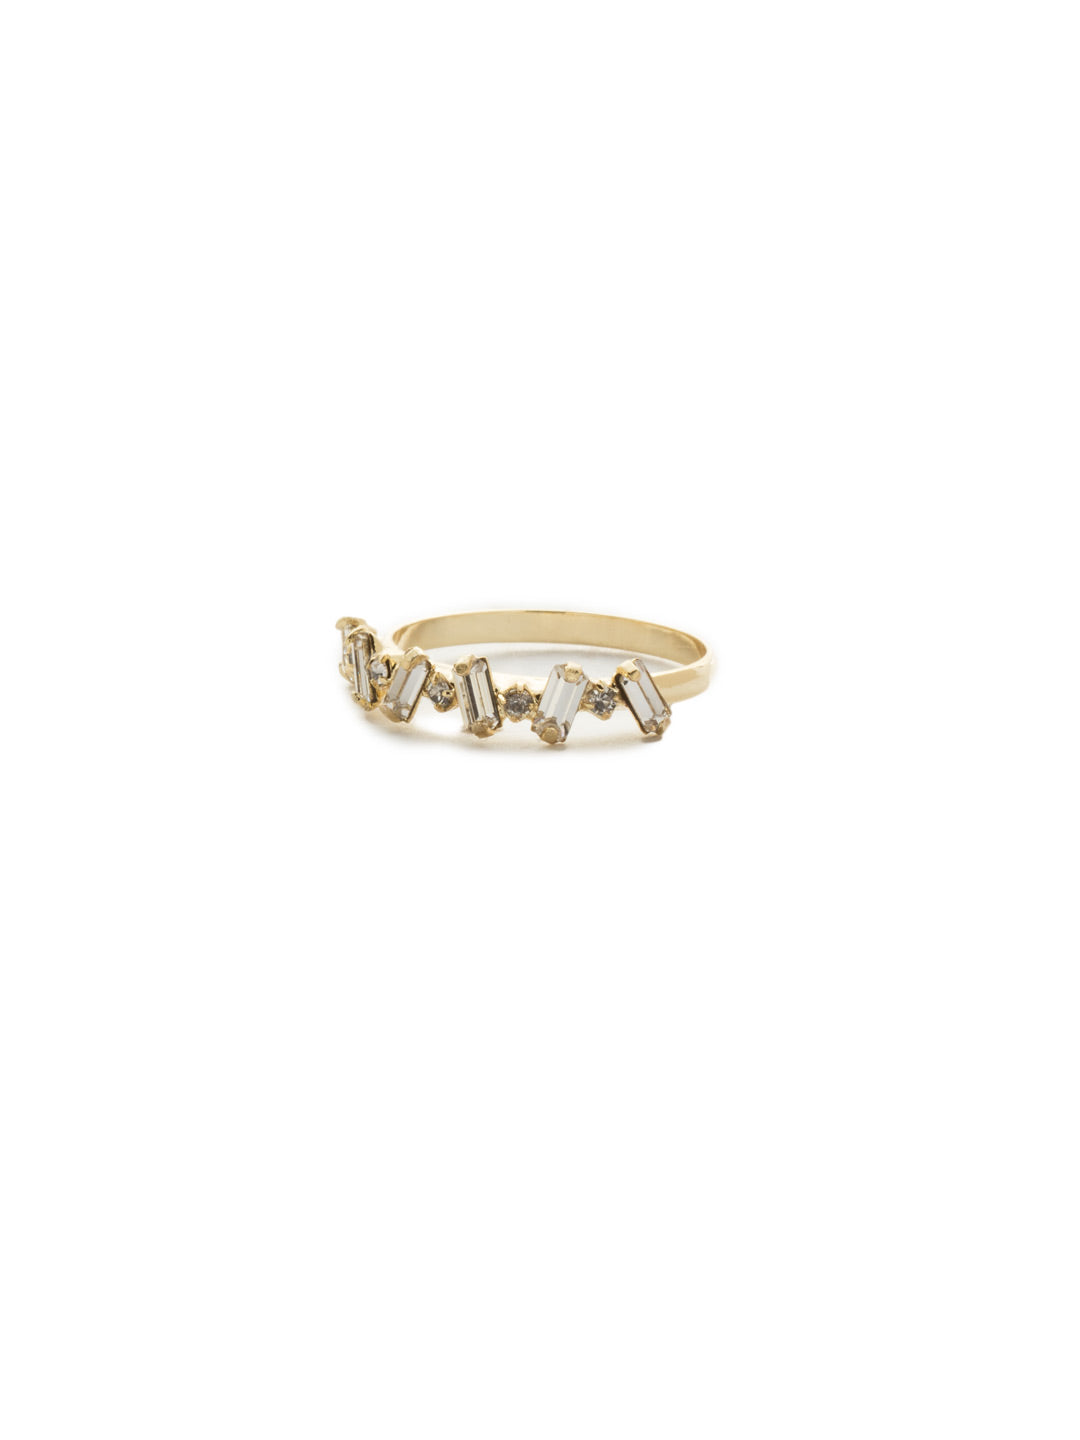 Radiantly Radial Crystal Band Ring - 4REK38BGCRY